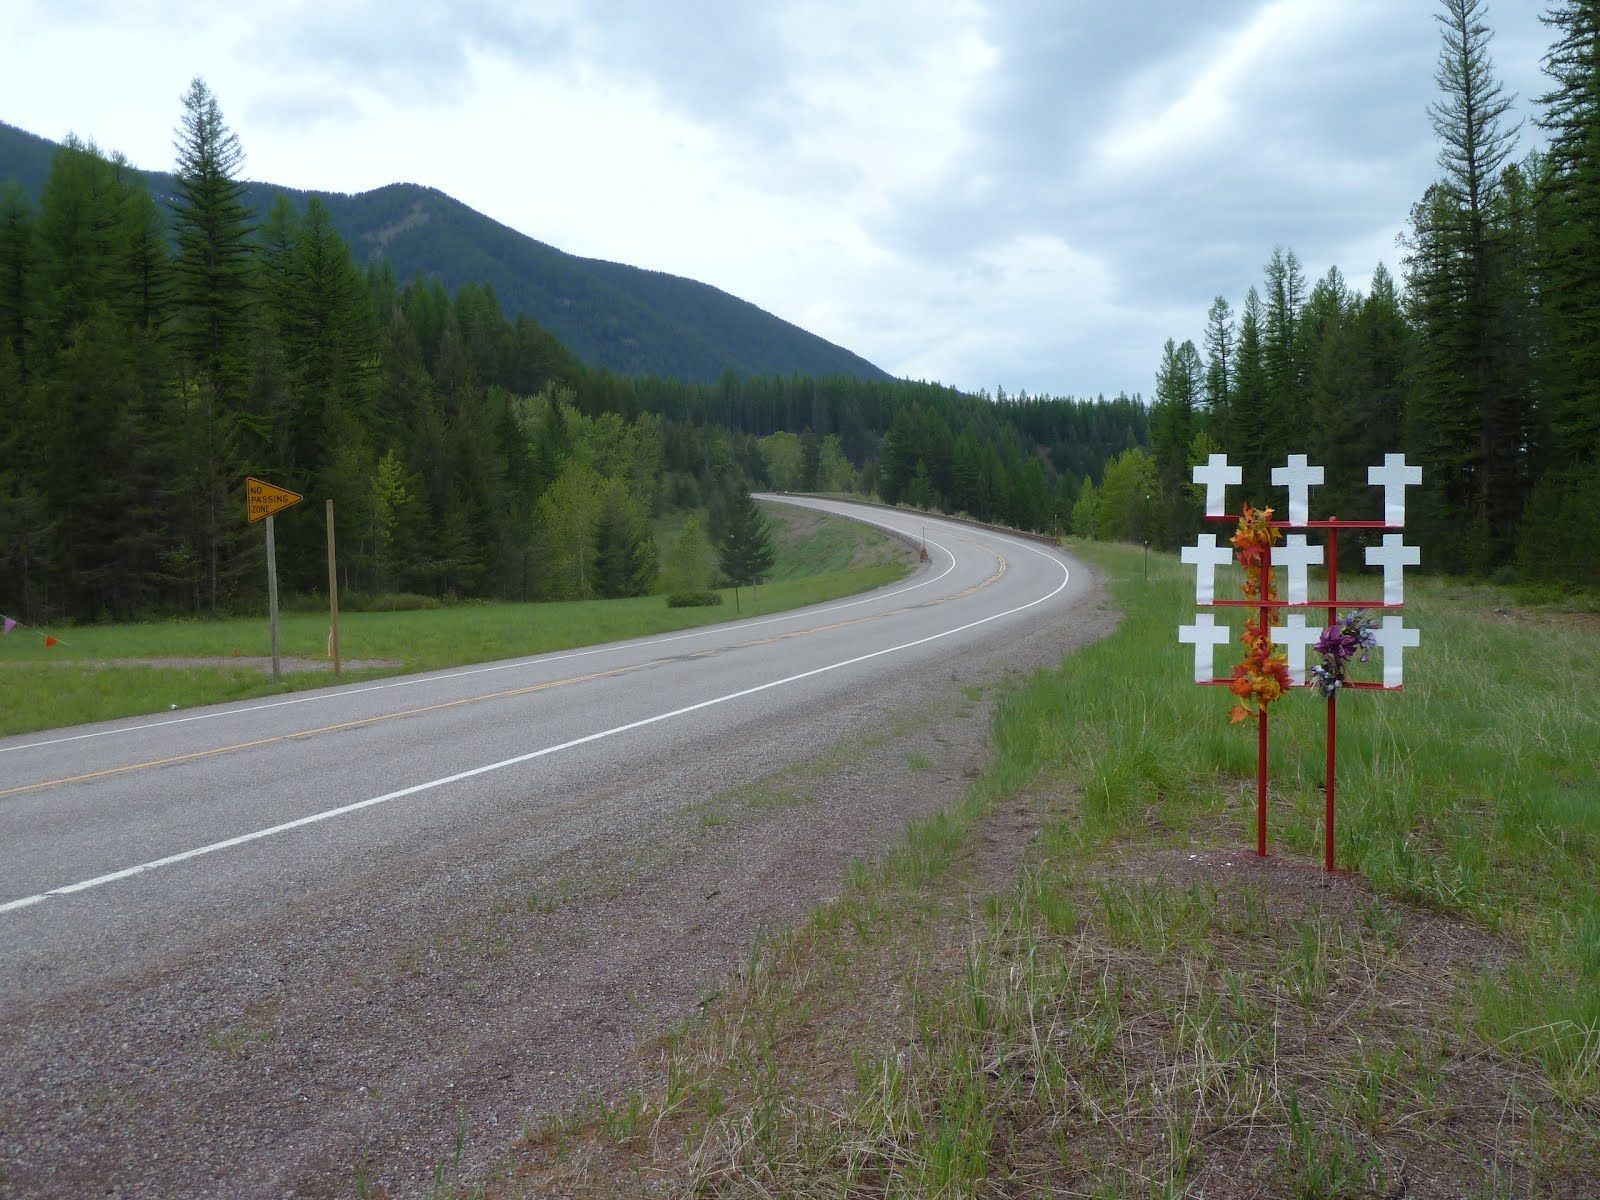 Essex?, Montana | the white roadside crosses each signify a traffic fatality in that spot. 9 in one accident.